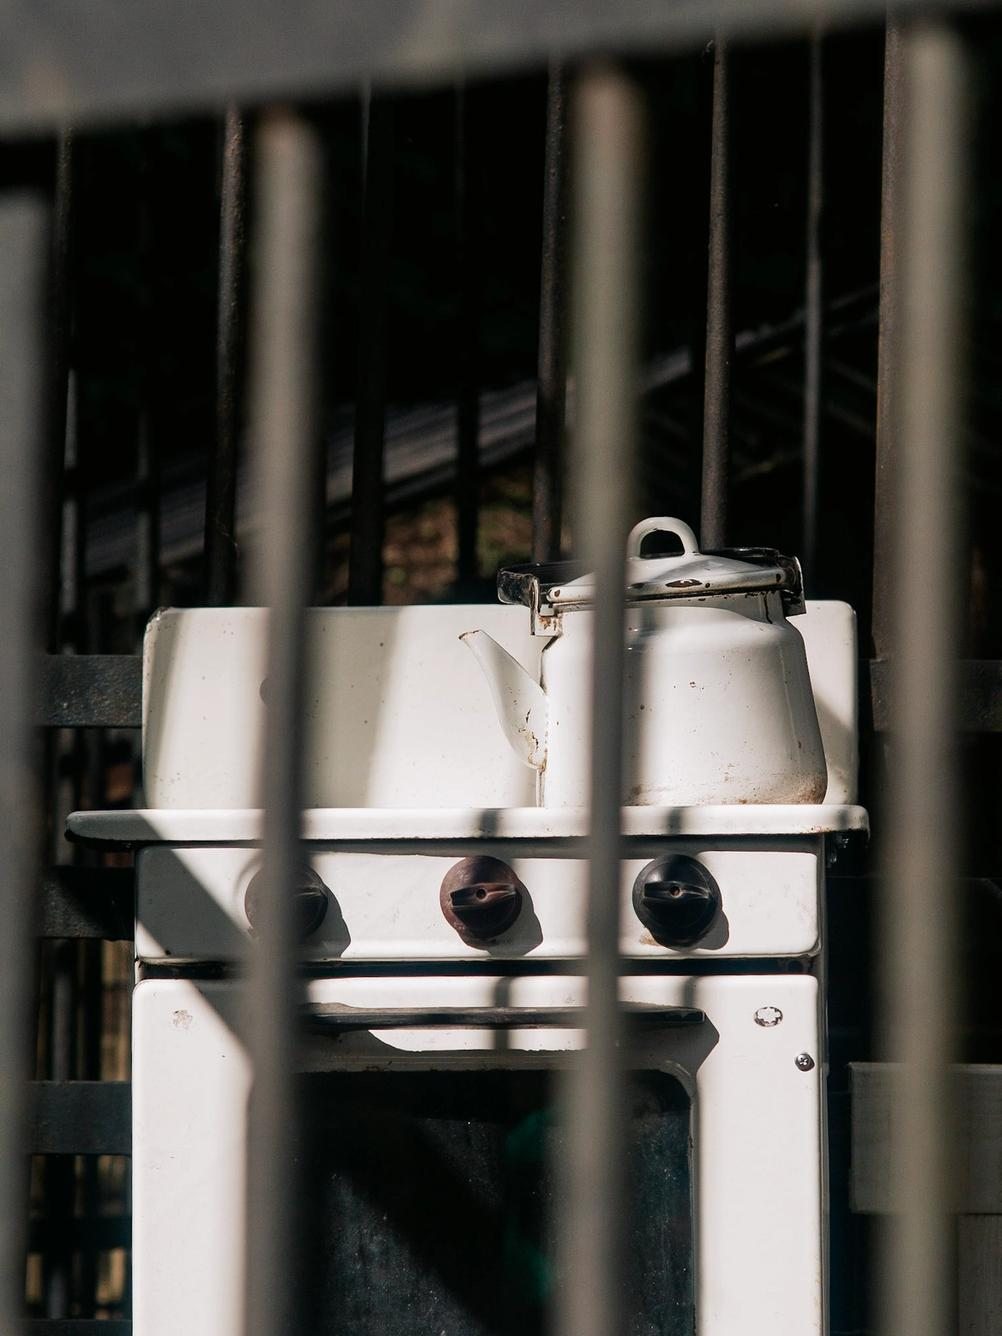 Photo of an old kitchen equipment taken through some bars.